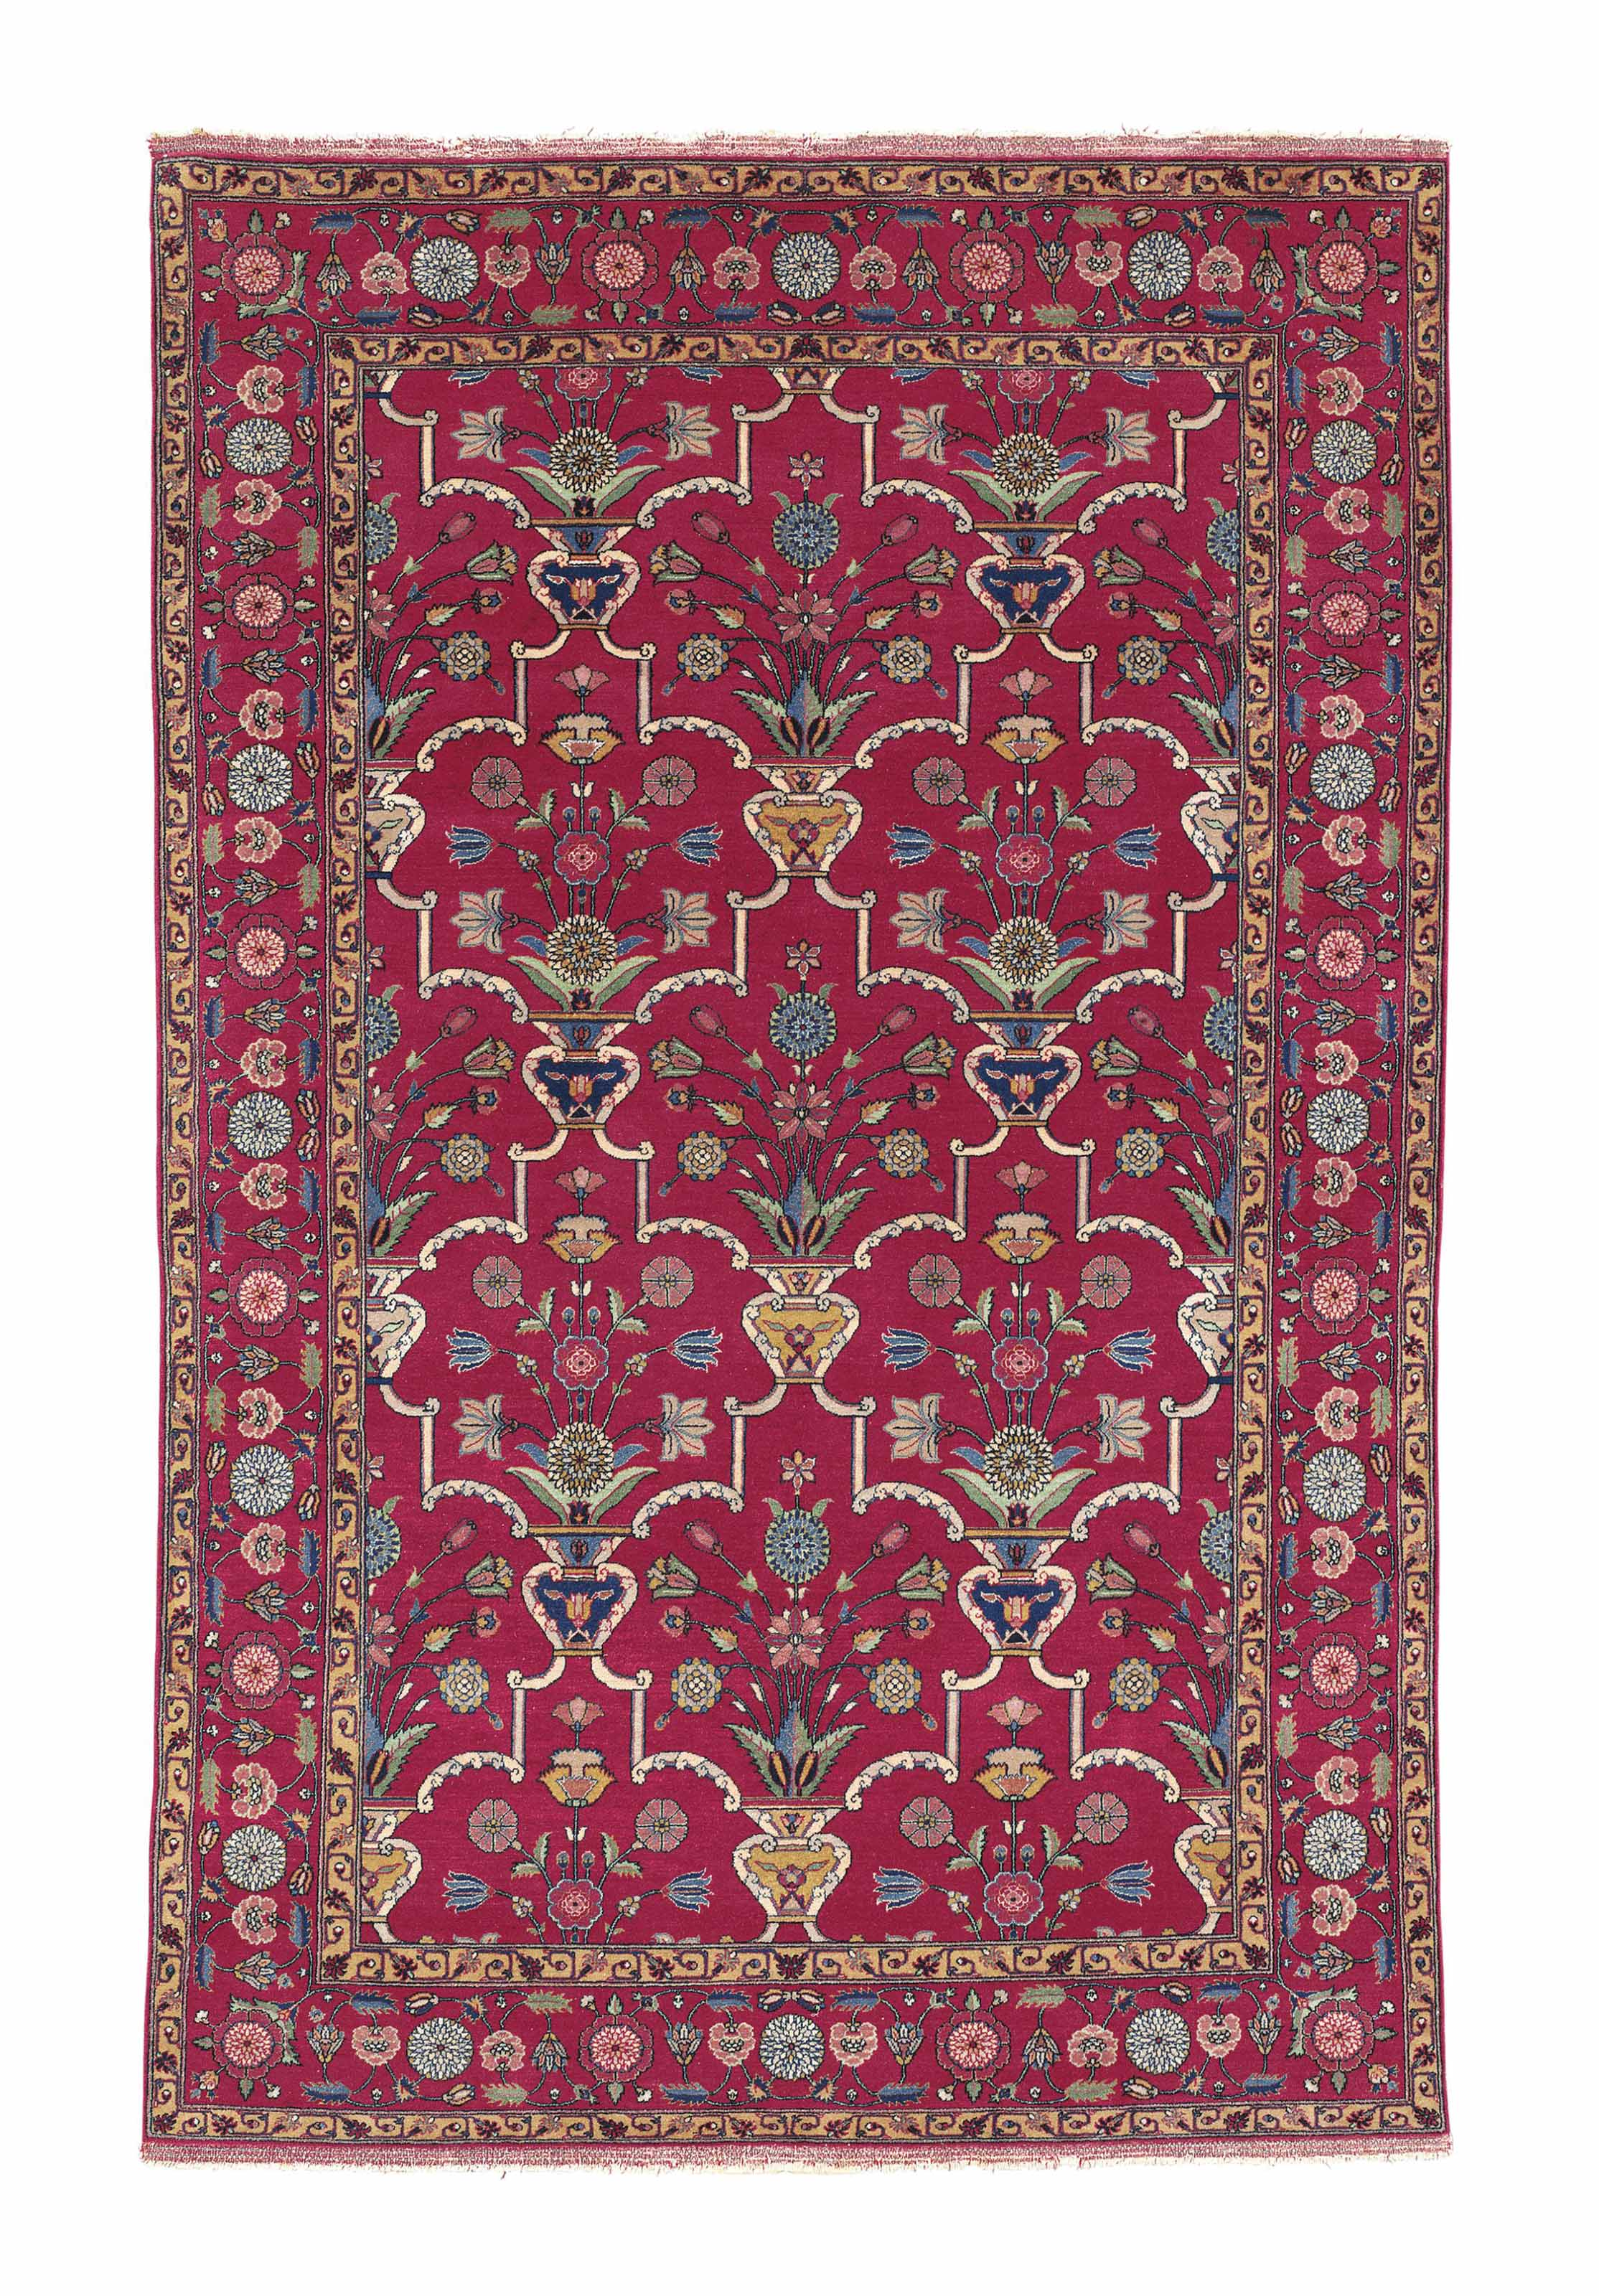 A PASHMINA INDIAN RUG